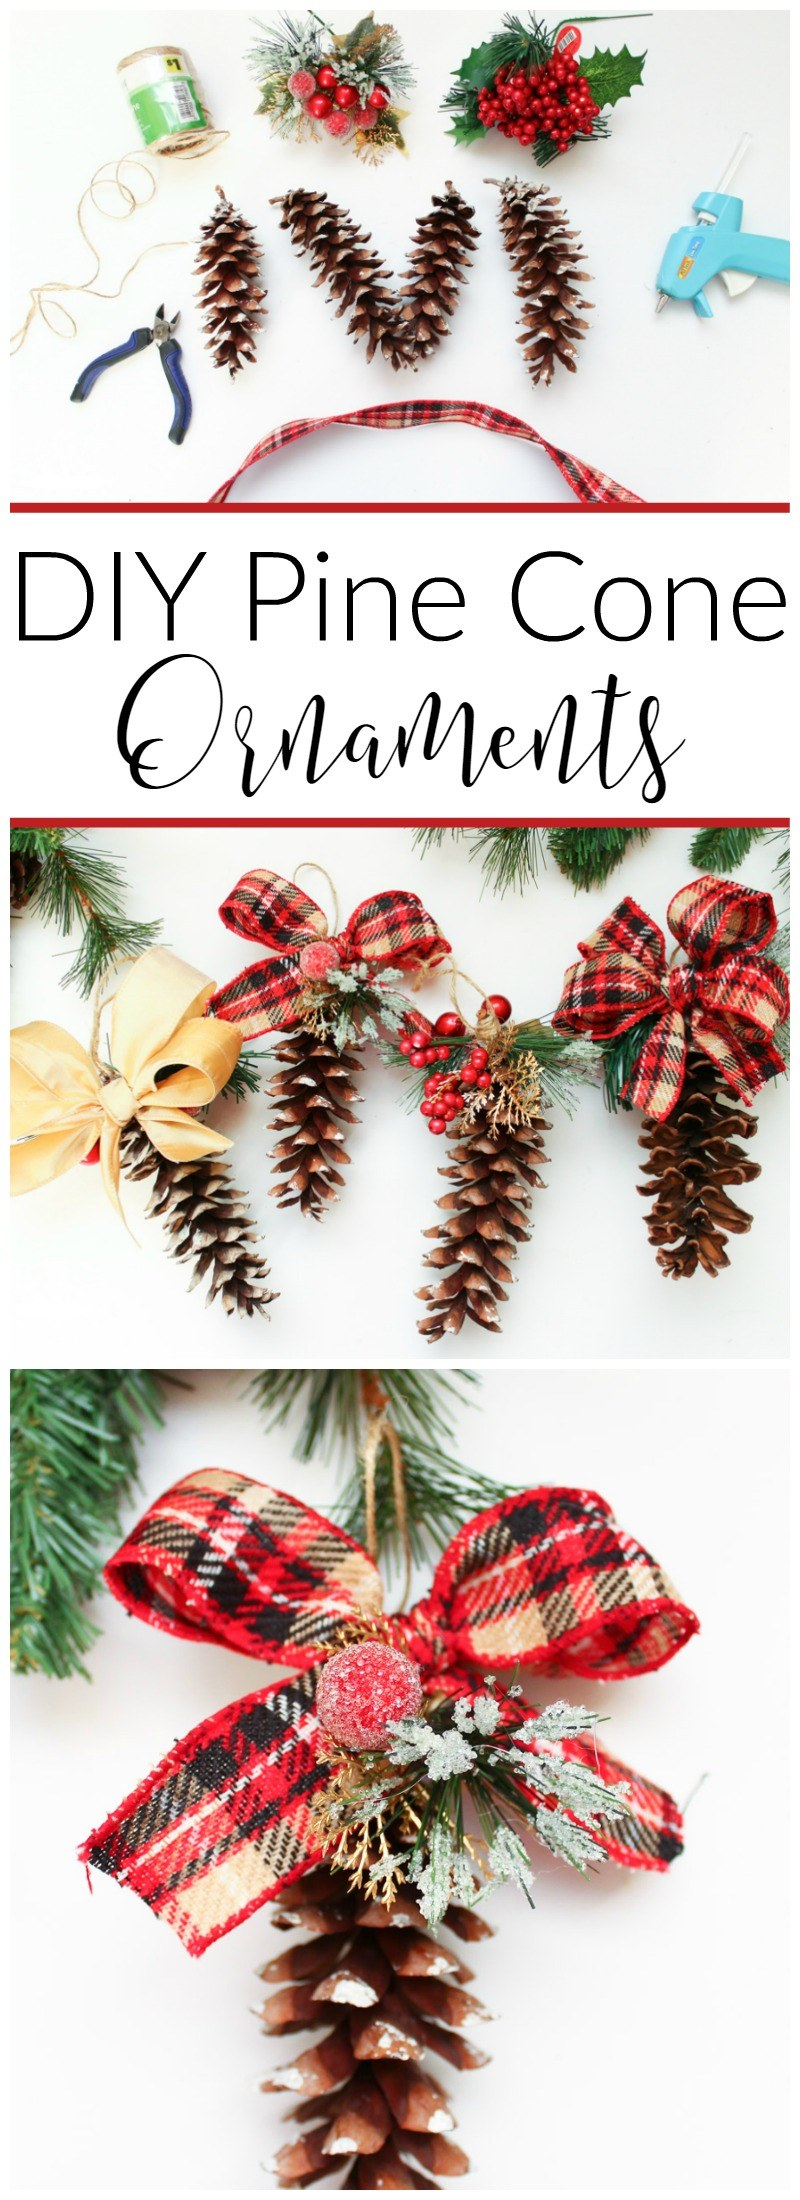 DIY Pine Cone Ornaments